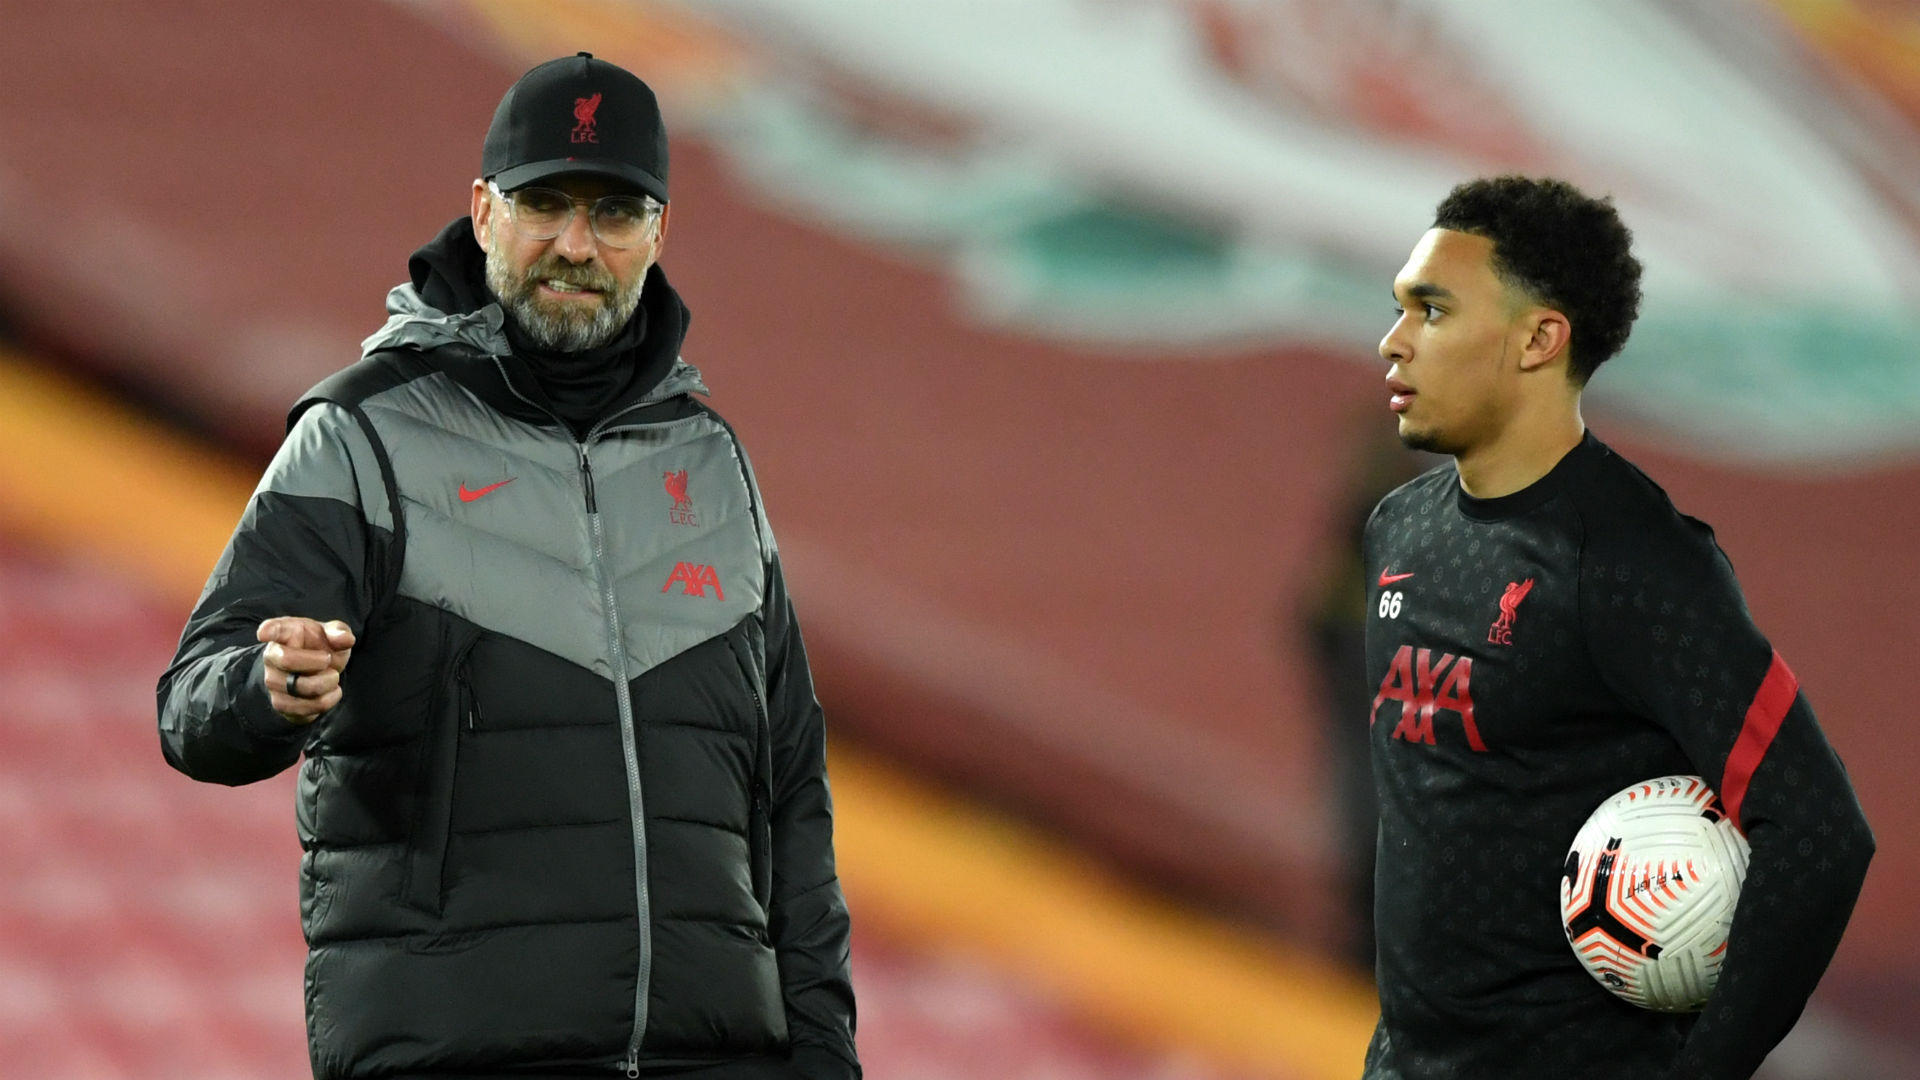 Liverpool players earned easier wins after Sheffield United test, says Klopp